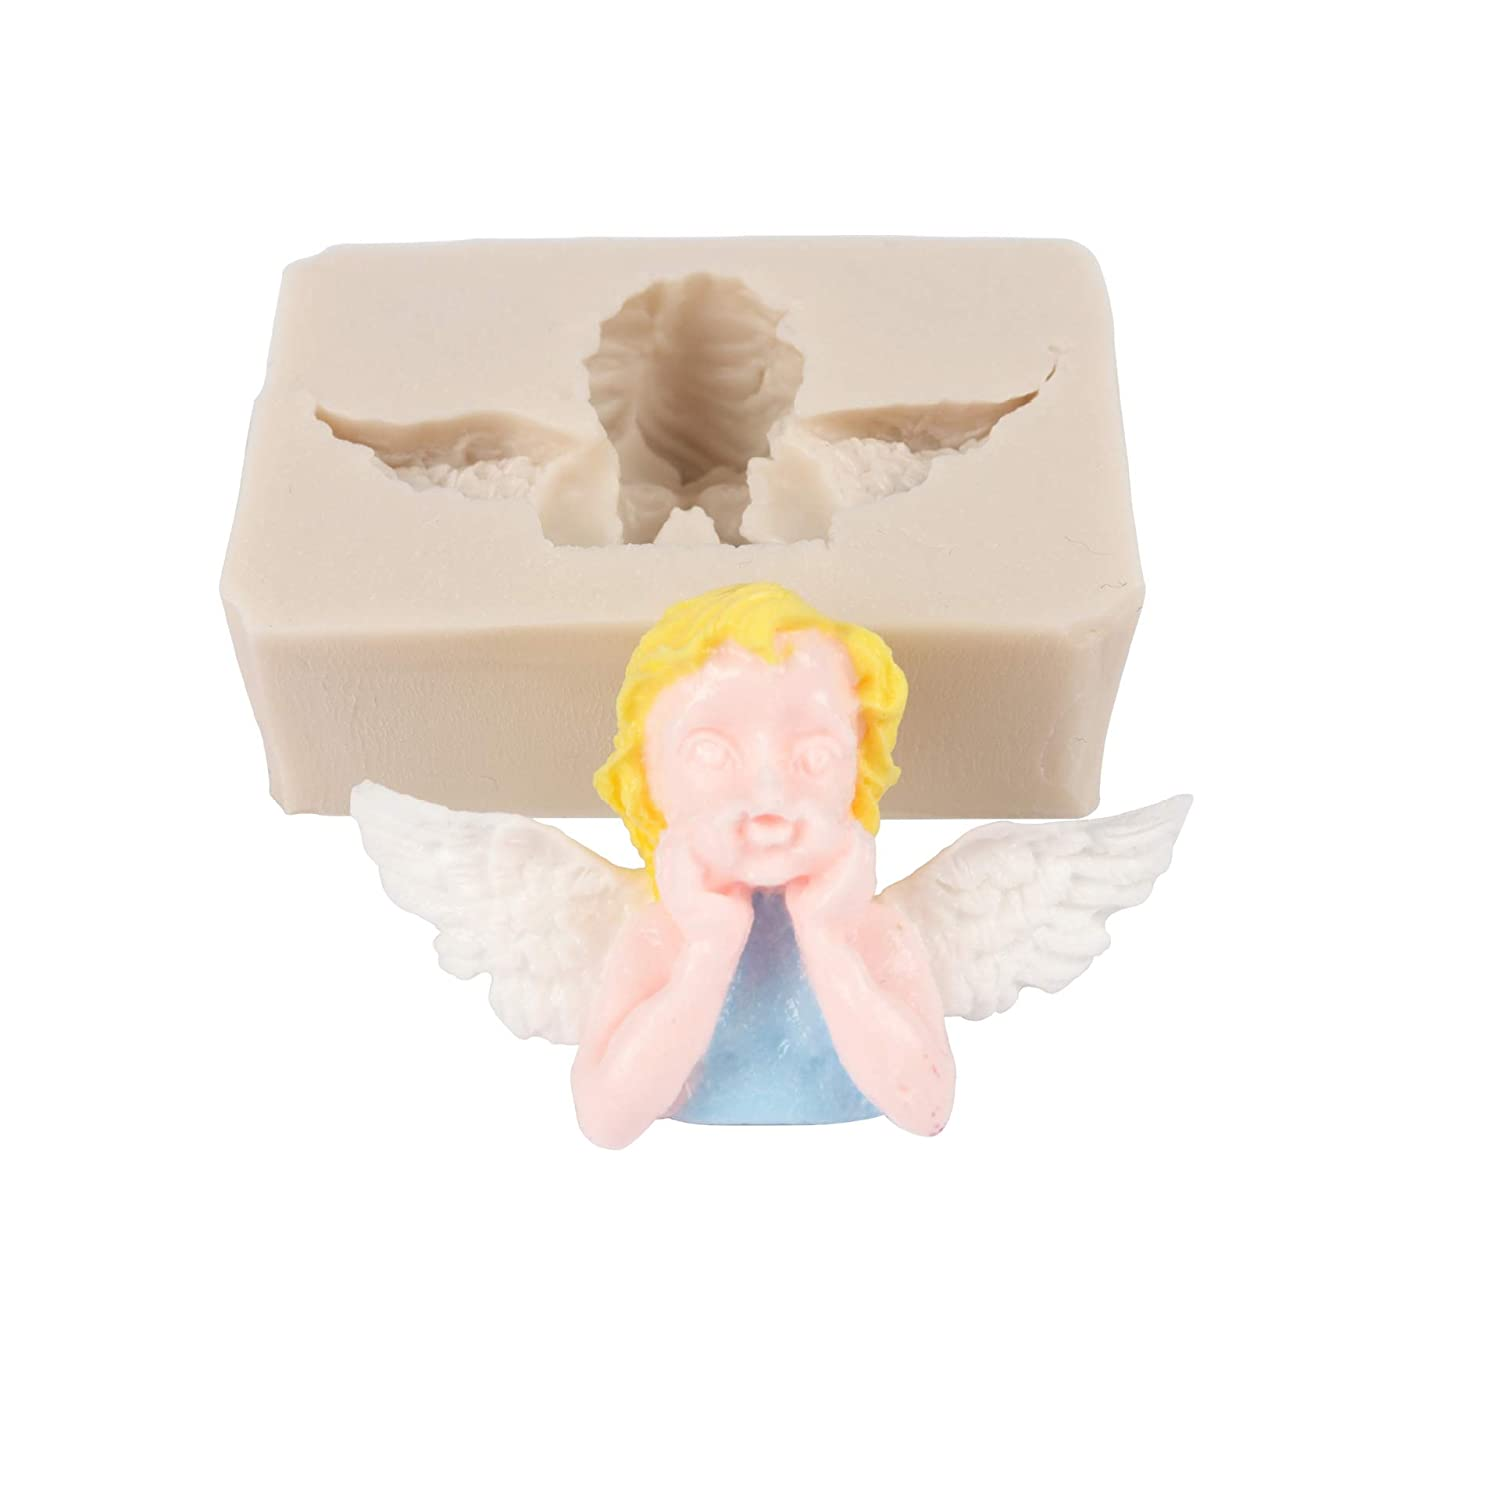 Fondant Angels Mold Fondant Cake Silicone Molds Chocolate Cake Sugarcraft Tools Soap Polymer Clay Moulds 2 angel